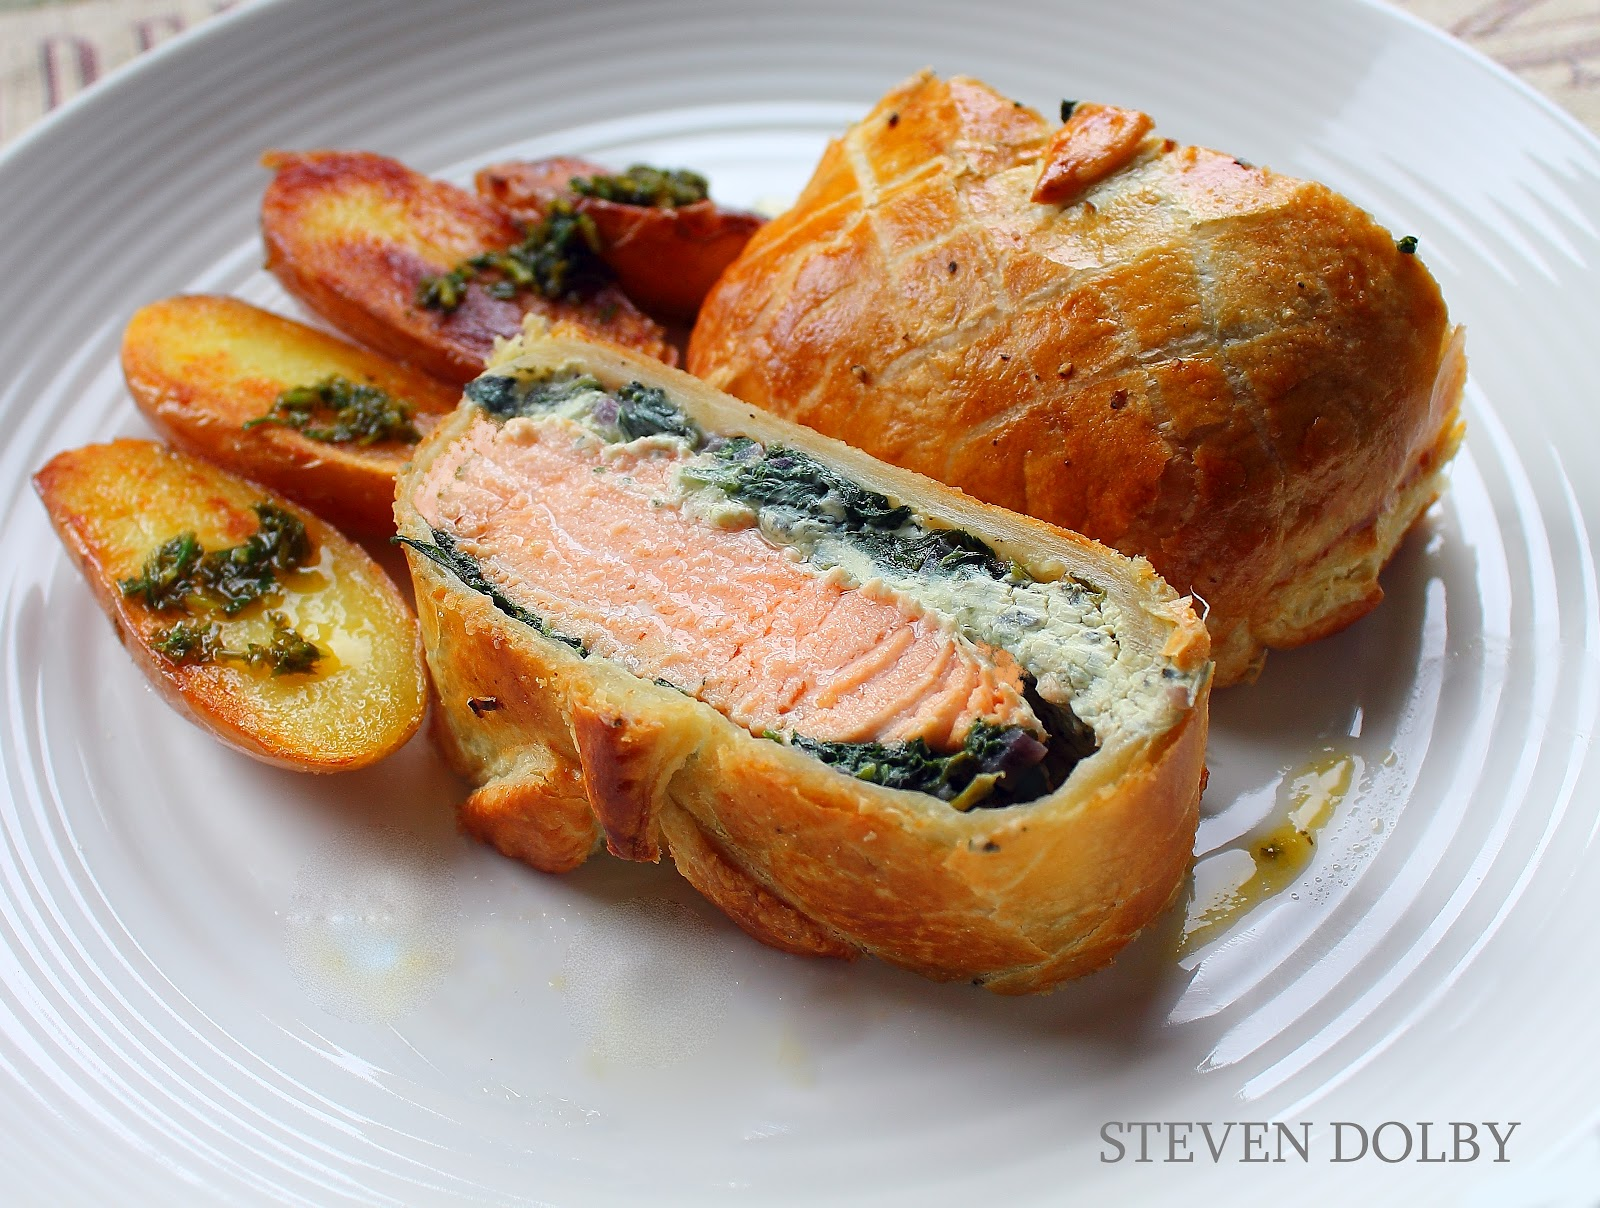 Steve's Cooking: Salmon en croute by Steven Dolby